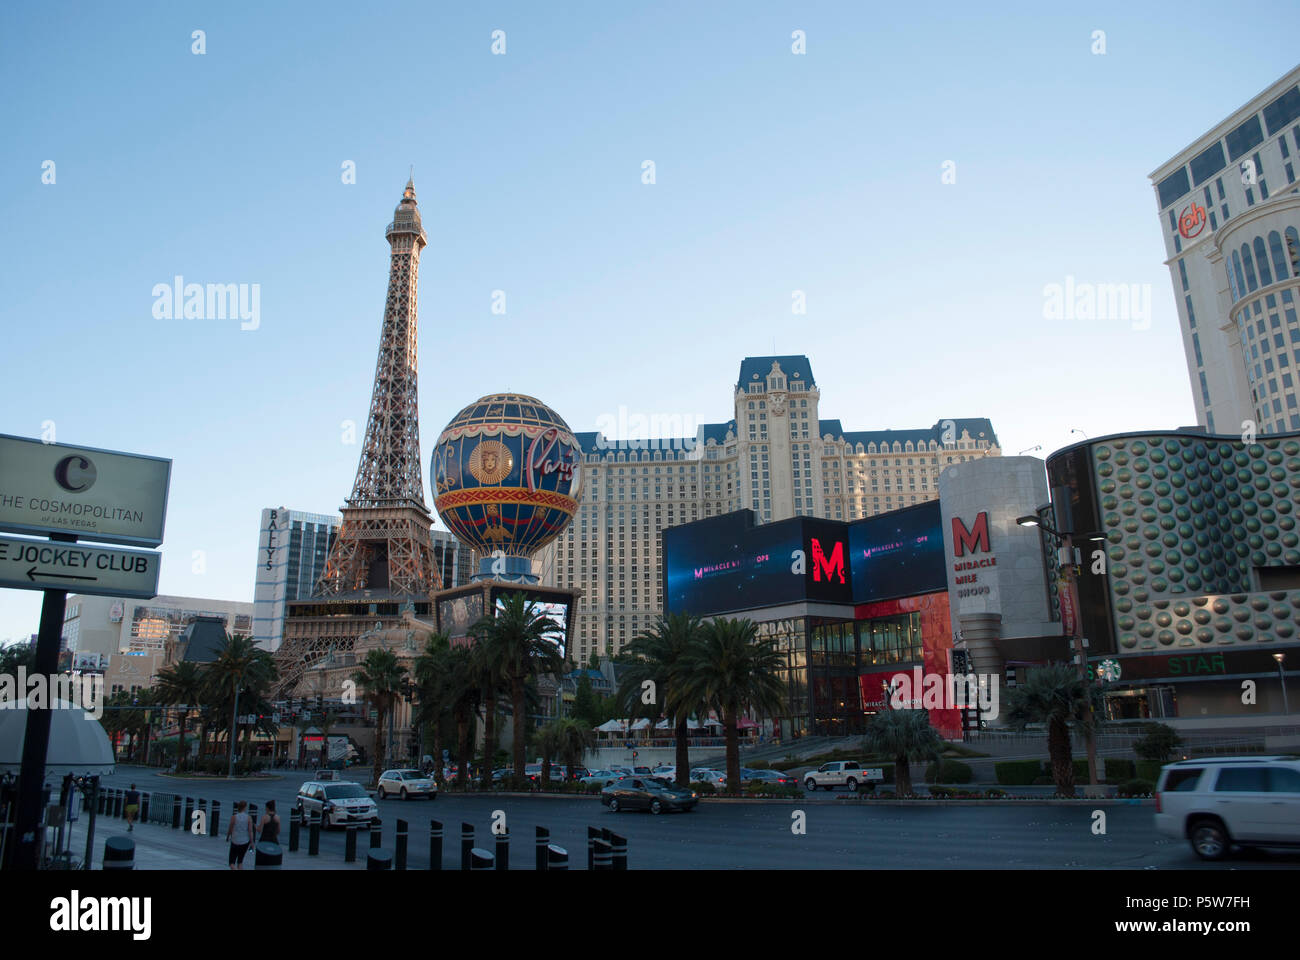 Famous city.  Advertising billboards, neon lights. Hollywood, Paris, Las Vegas, Strip. Famous street. Sunrise. Sunset in the city - Stock Image